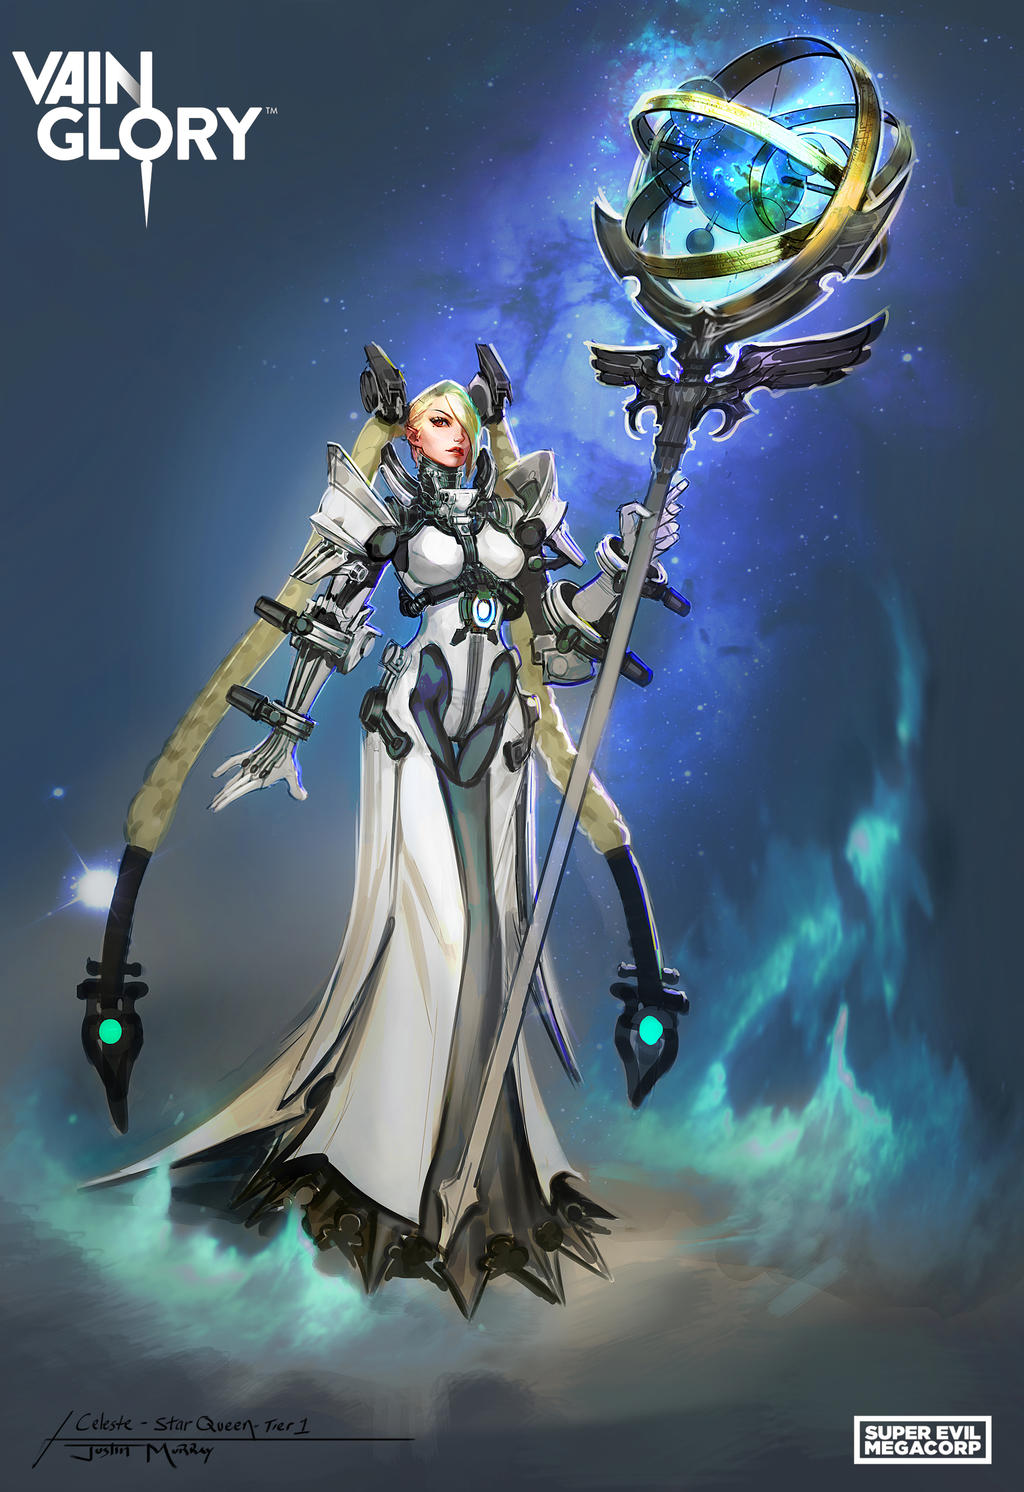 Hd wallpaper vainglory - Raggedy Annedroid 118 8 Star Queen Celeste By Raggedy Annedroid